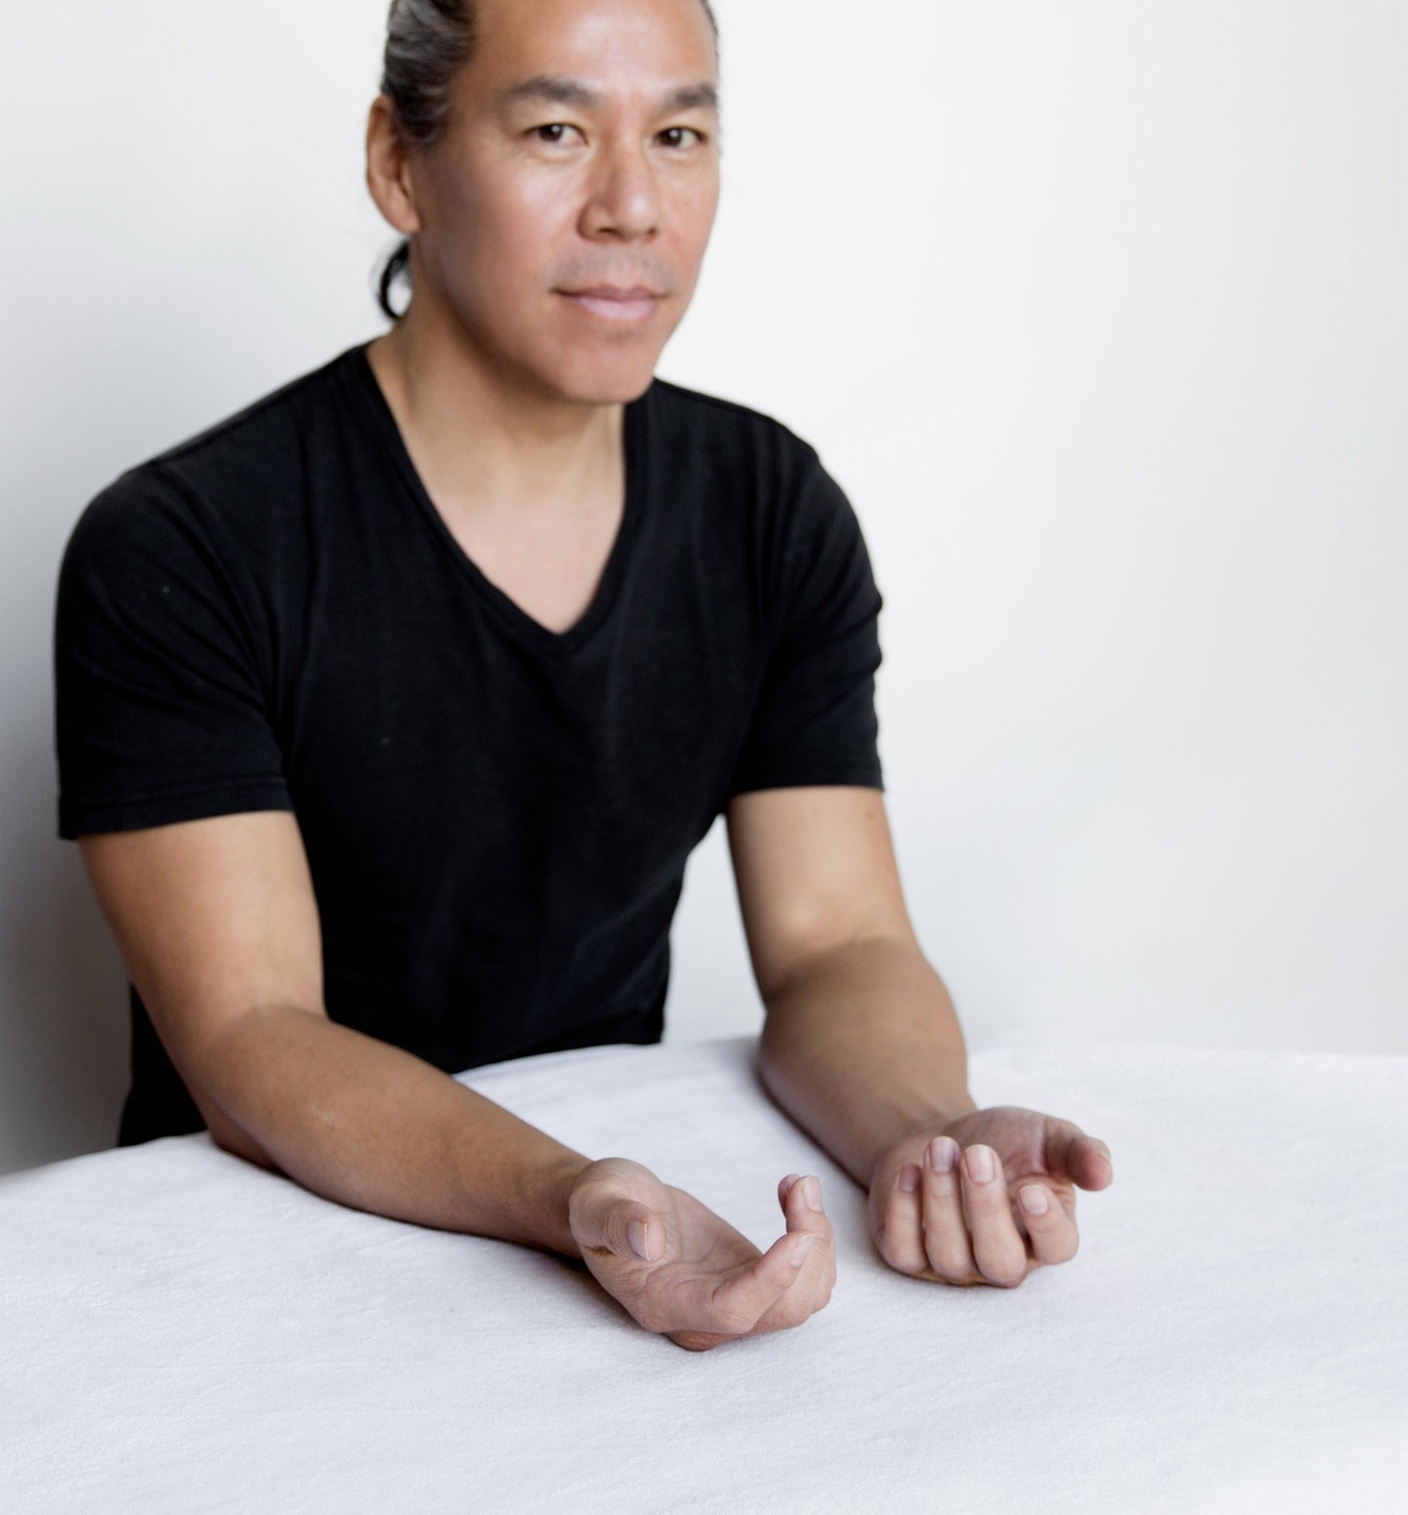 Gary Choi, Osteopathic rooms - practicing in Bondi Junction since 2007